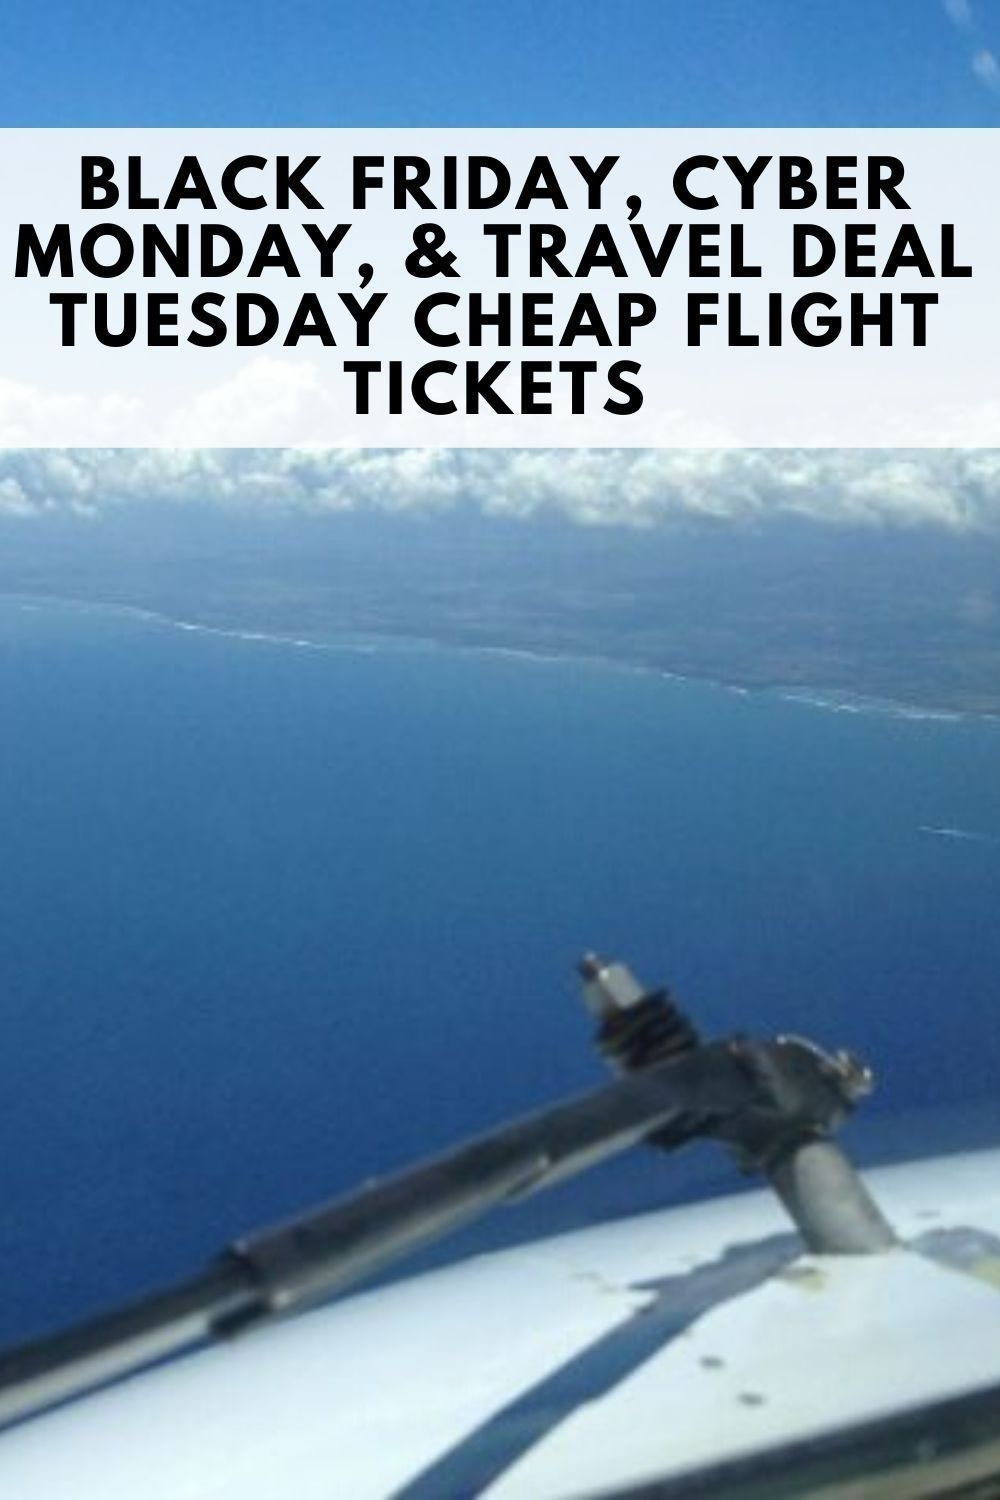 Black Friday Cyber Monday Travel Deal Tuesday Cheap Flight Tickets Bla Black Friday Cyber Monday In 2020 Travel Deal Cheap Flight Tickets Flight Ticket